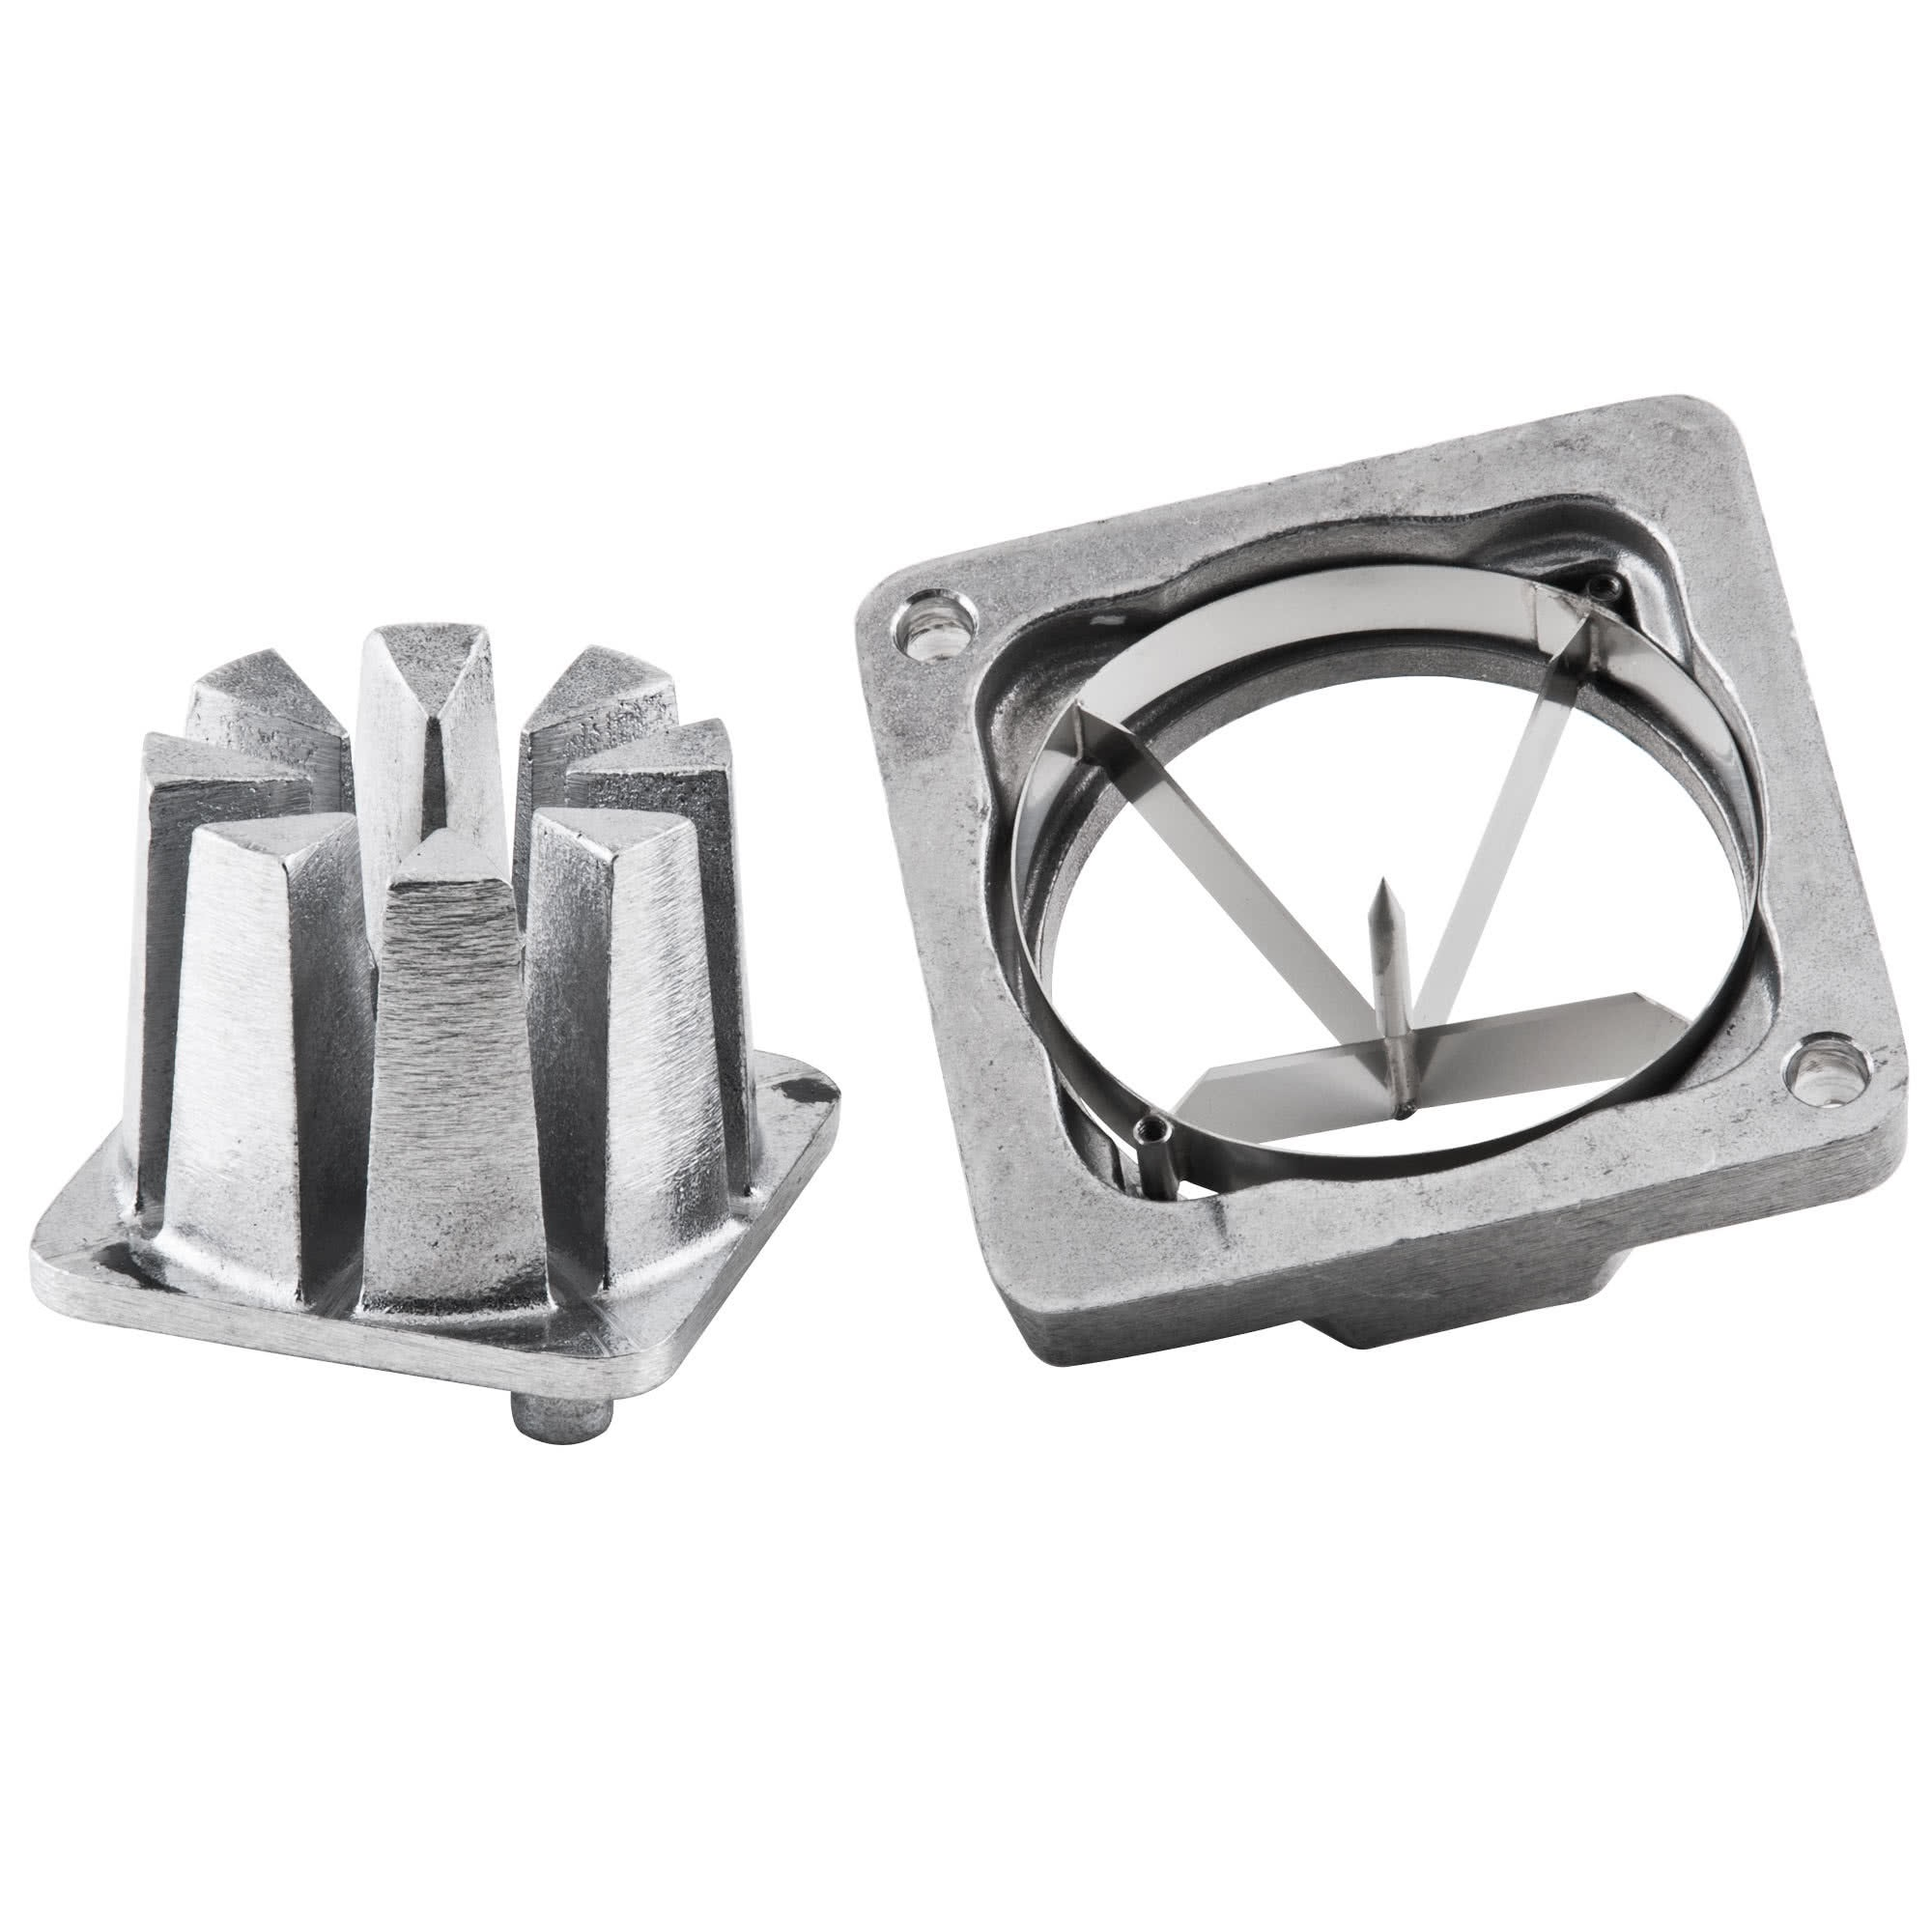 Nemco 55727-4 Four-Section Wedger Kit for Easy Chopper/FryKutter